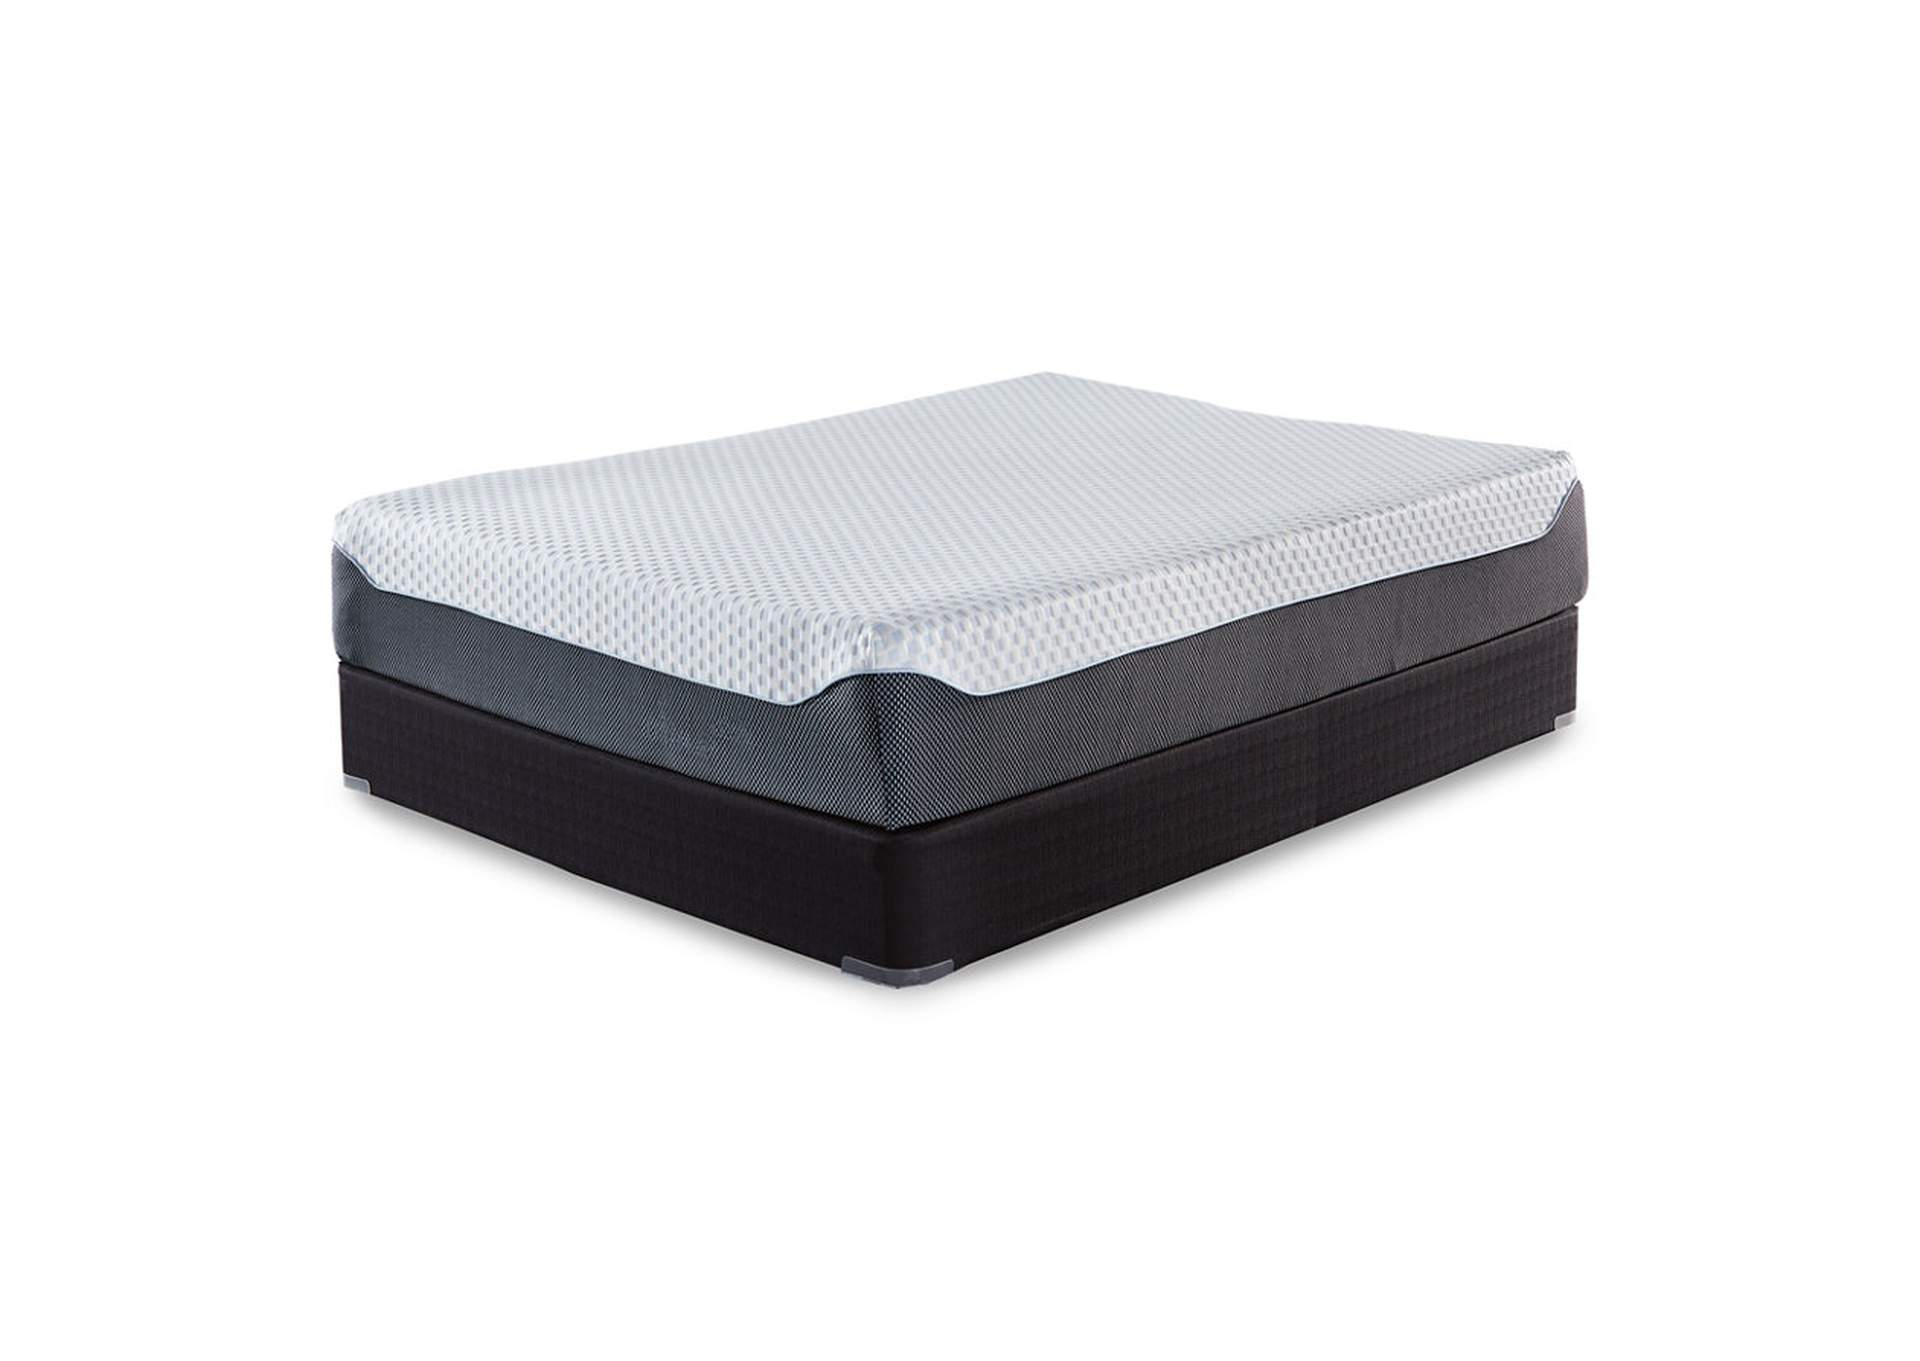 12 Inch Chime Elite Memory Foam Full Mattress w/Foundation,Sierra Sleep by Ashley